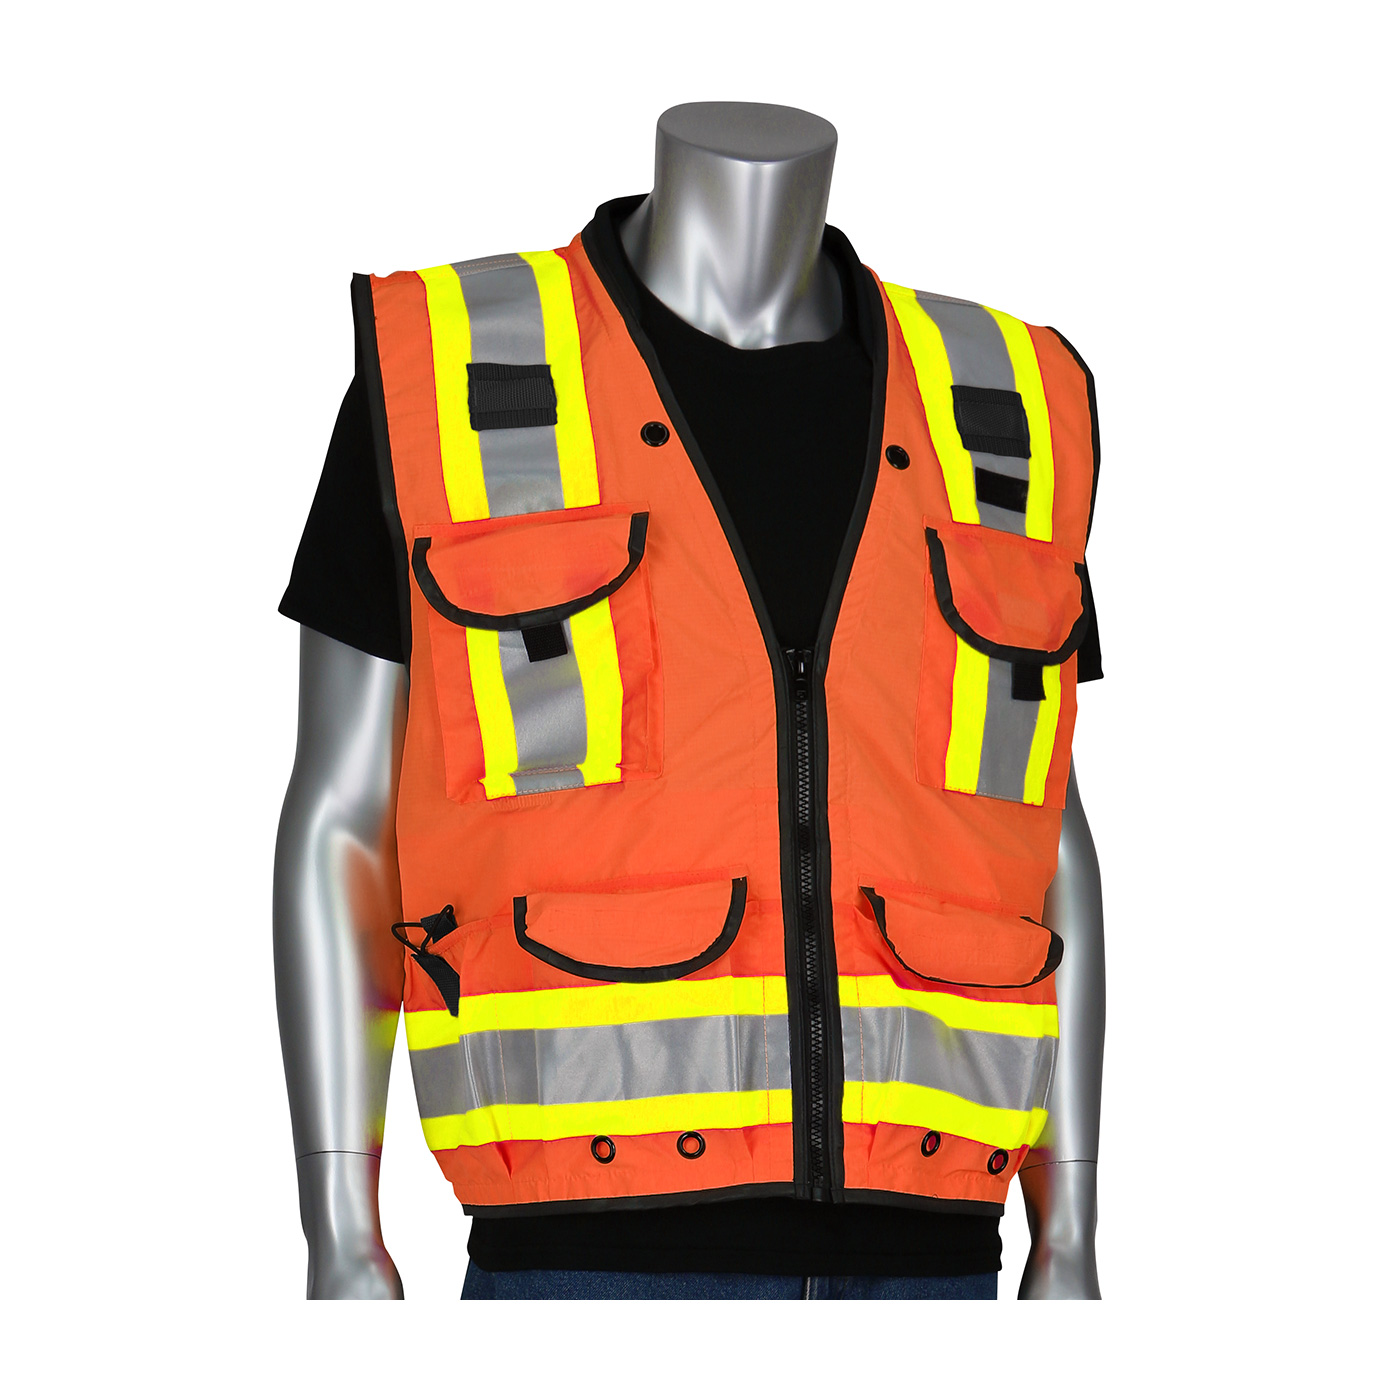 PIP® ANSI Type R Class 2 Orange Two-Tone Fifteen Pocket Tech-Ready Ripstop Surveyors Vest with Mesh Back #302-0900